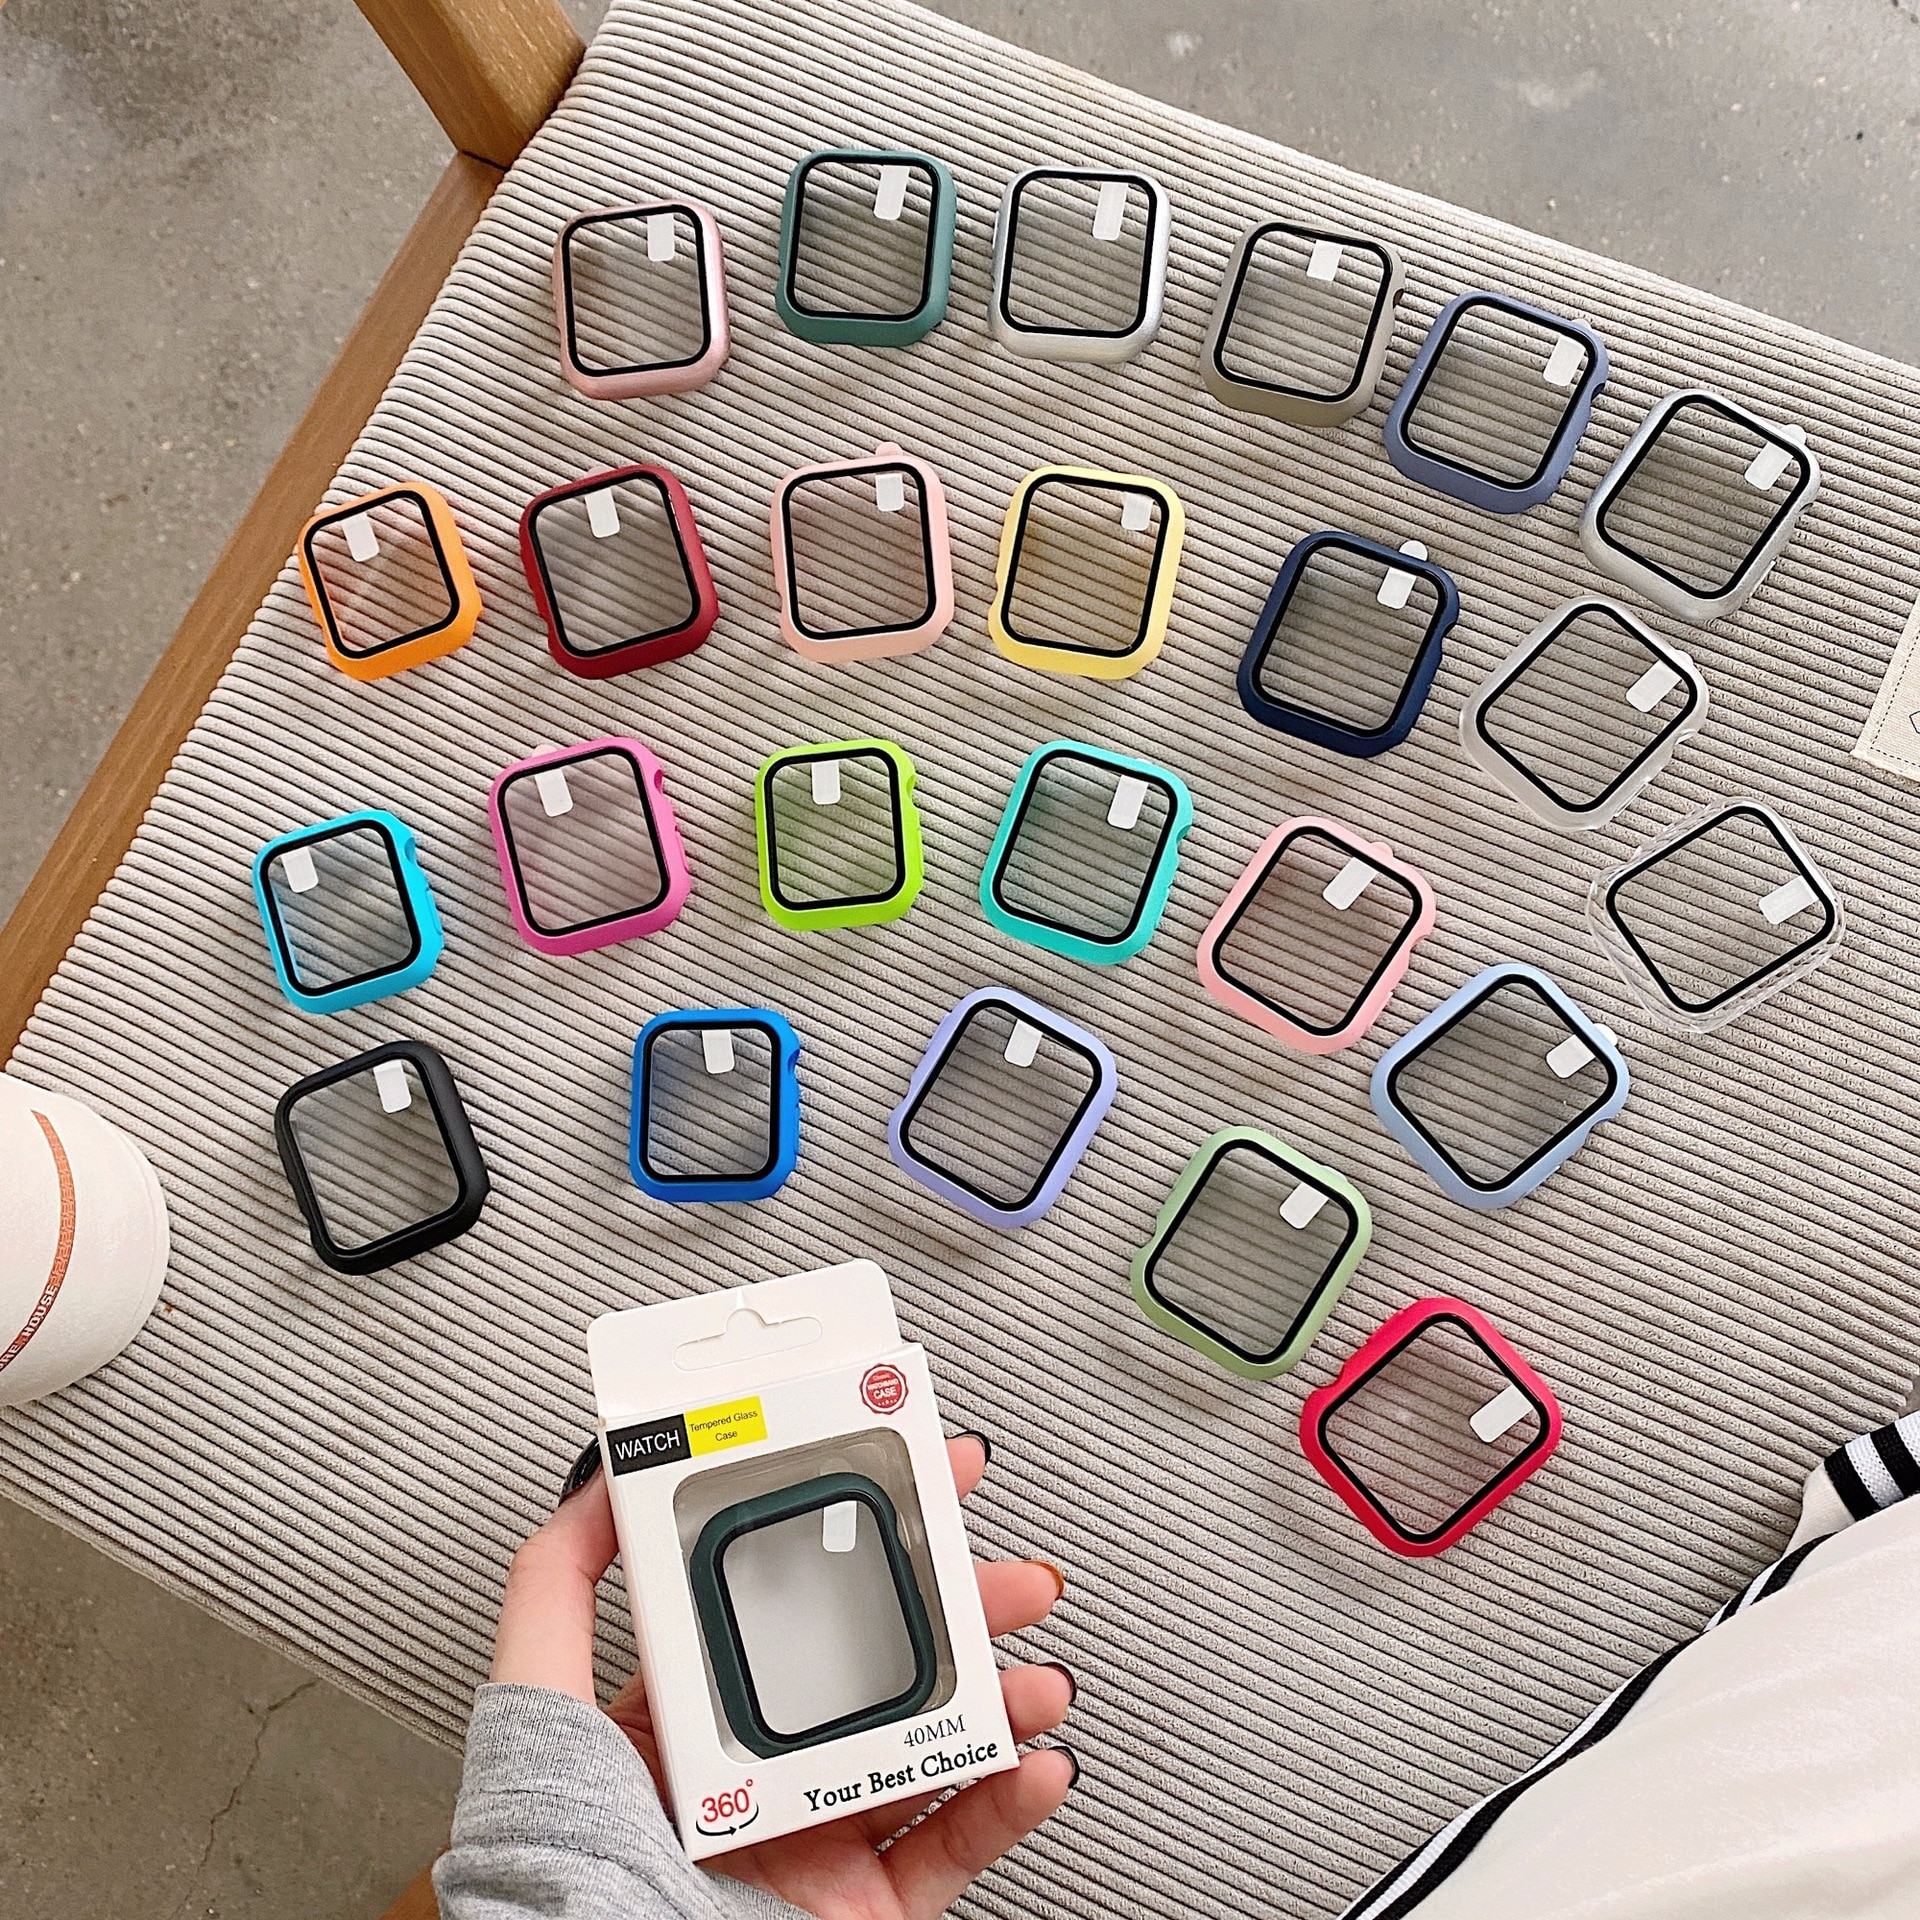 screen protector case for apple watch 5 case with glass cover for apple watch series 5 4 44mm 42mm iwatch 3 2 1 42mm protector Glass+cover For Apple Watch Case 44mm 40mm 42mm 38mm Accessories bumper Screen Protector apple watch iWatch series 6 5 4 3 2 se